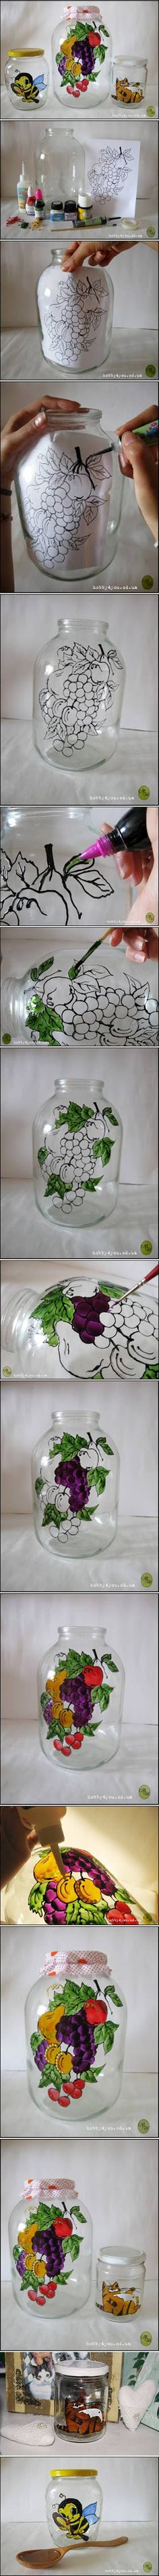 DIY Jar Painting Decor -- I really want some glass paint!!! But oh ANOTHER craft to get started on!!! :)